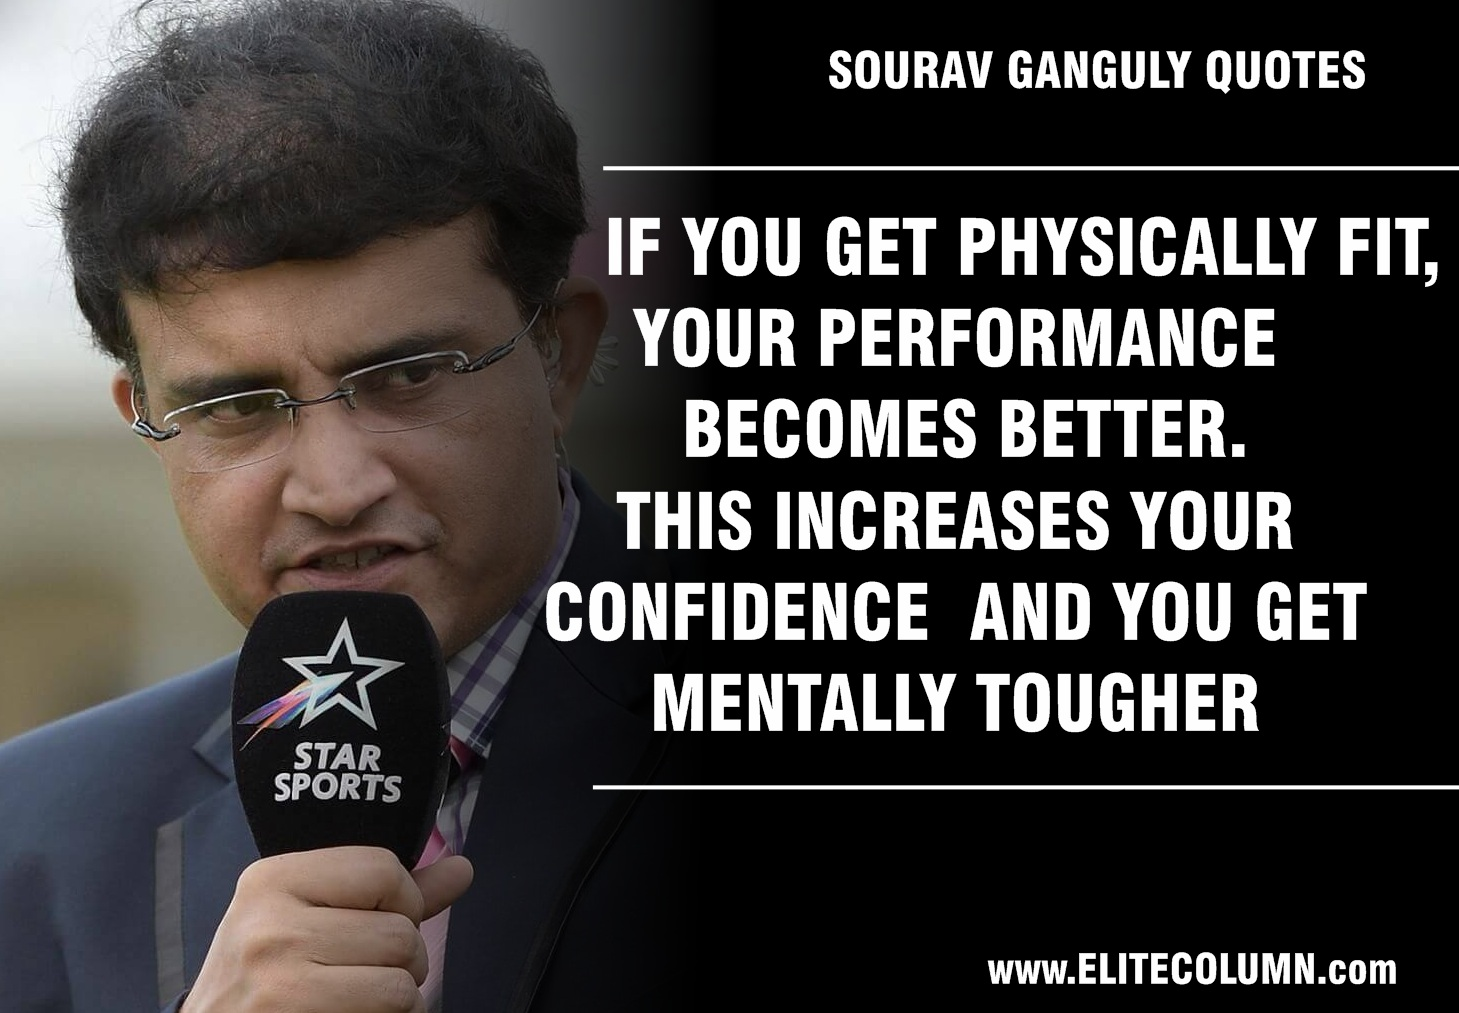 Sourav Ganguly Quotes (8)